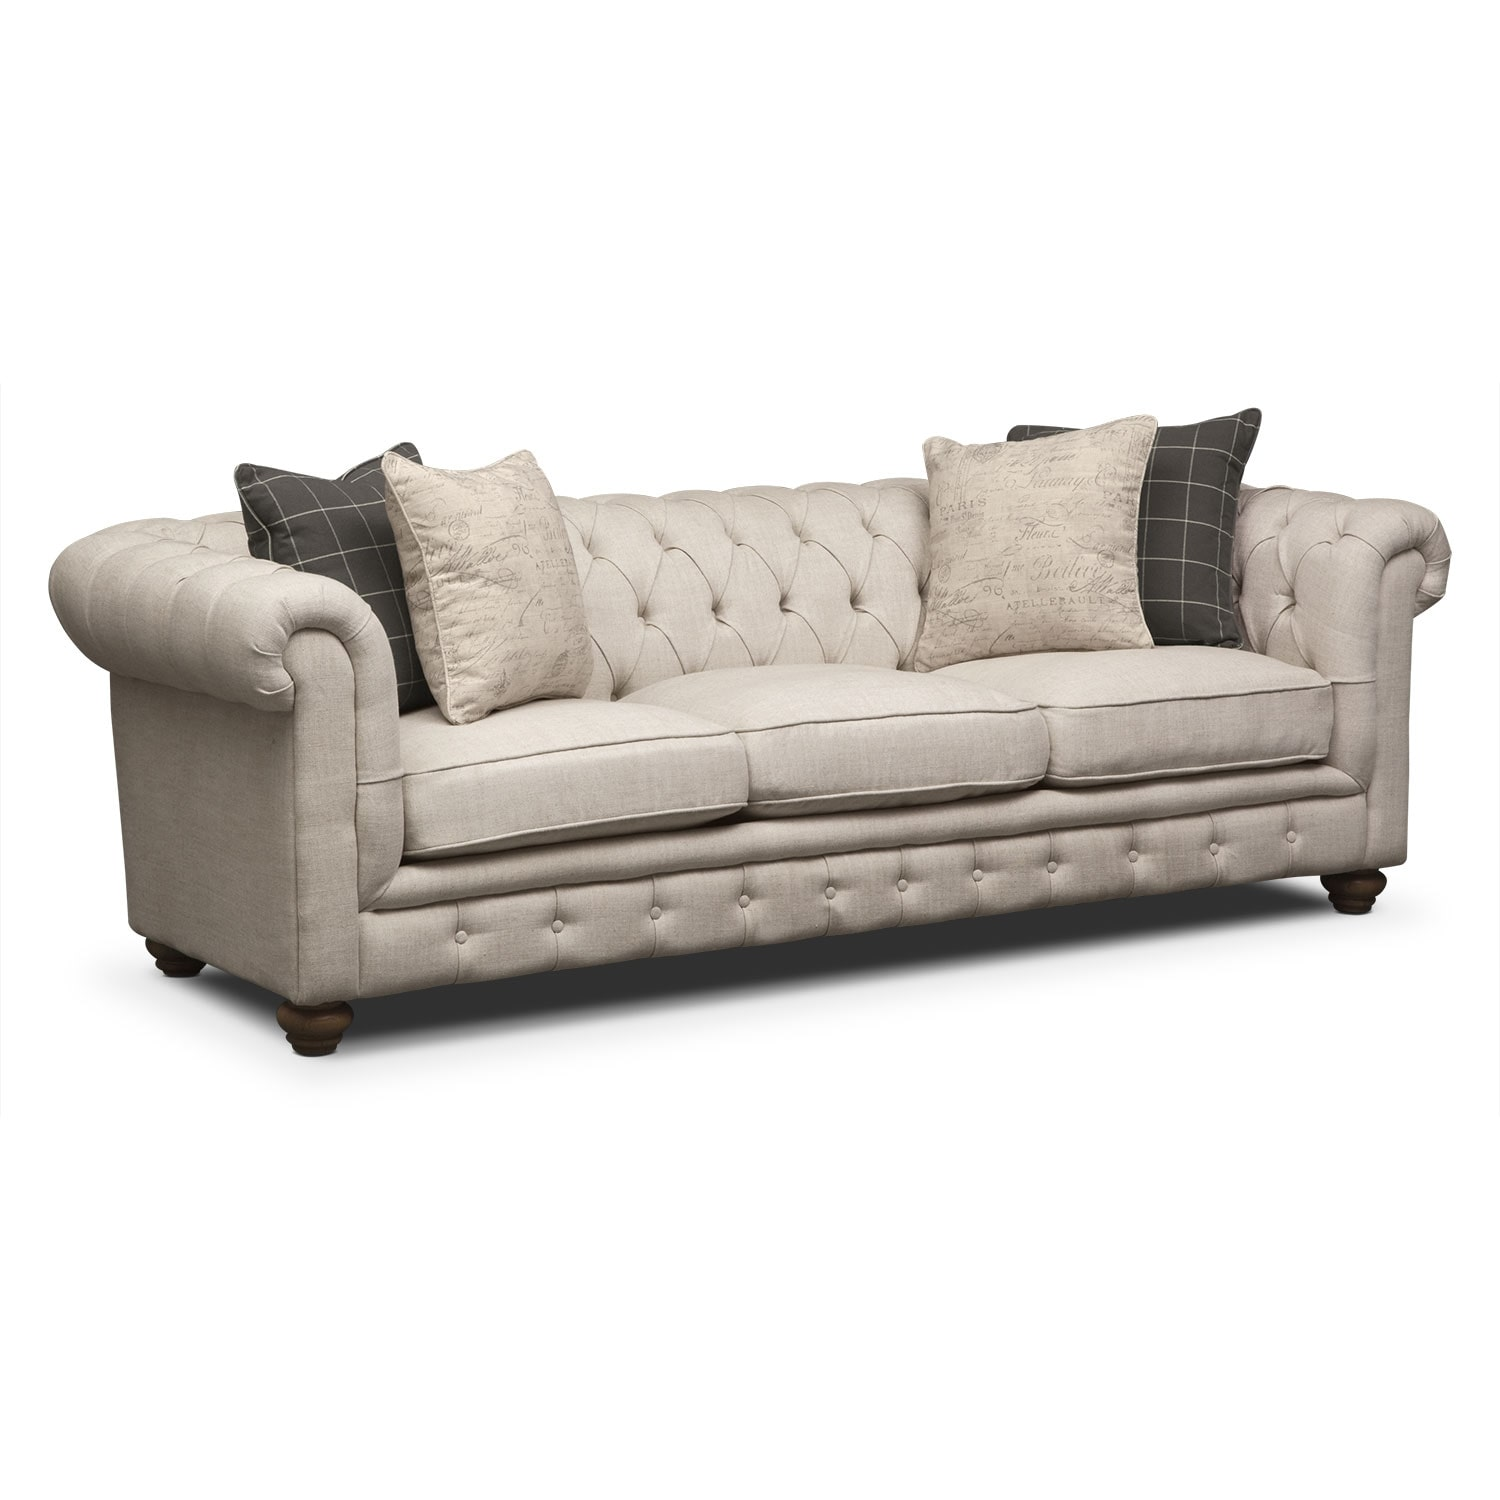 Madeline Sofa Beige American Signature Furniture